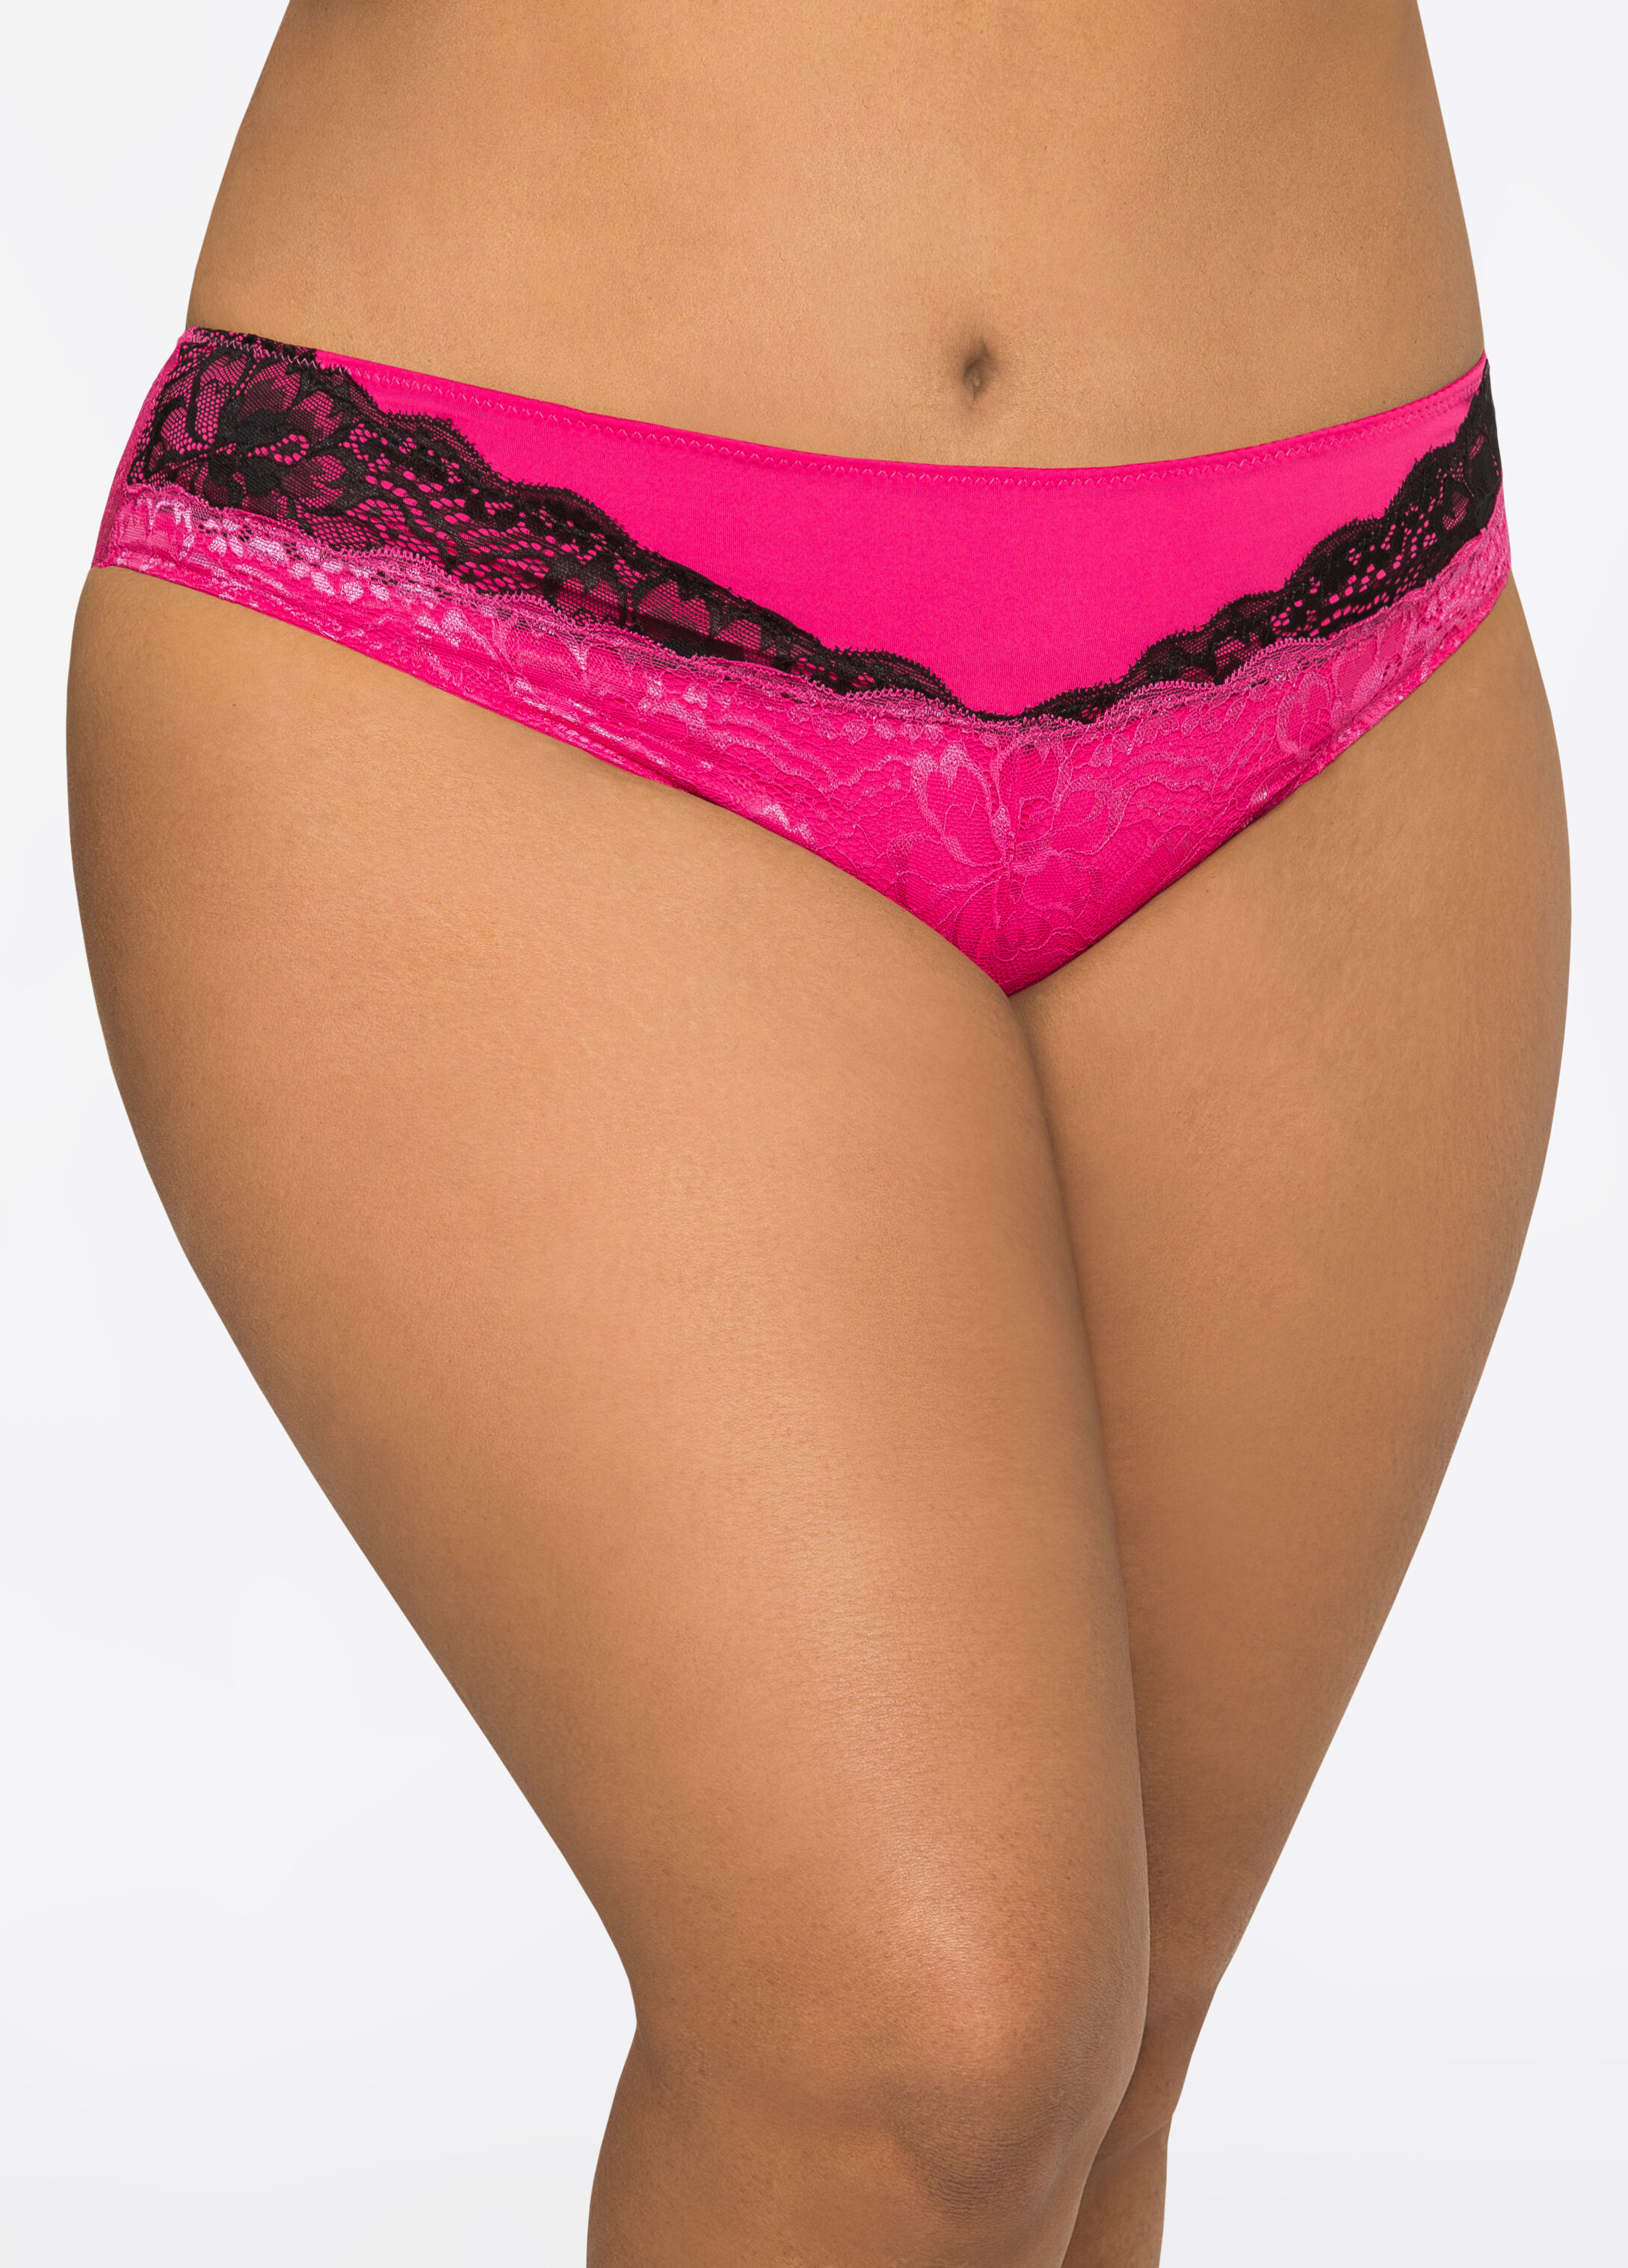 Contrast Lace Bikini Panty Beetroot Purple - Clearance